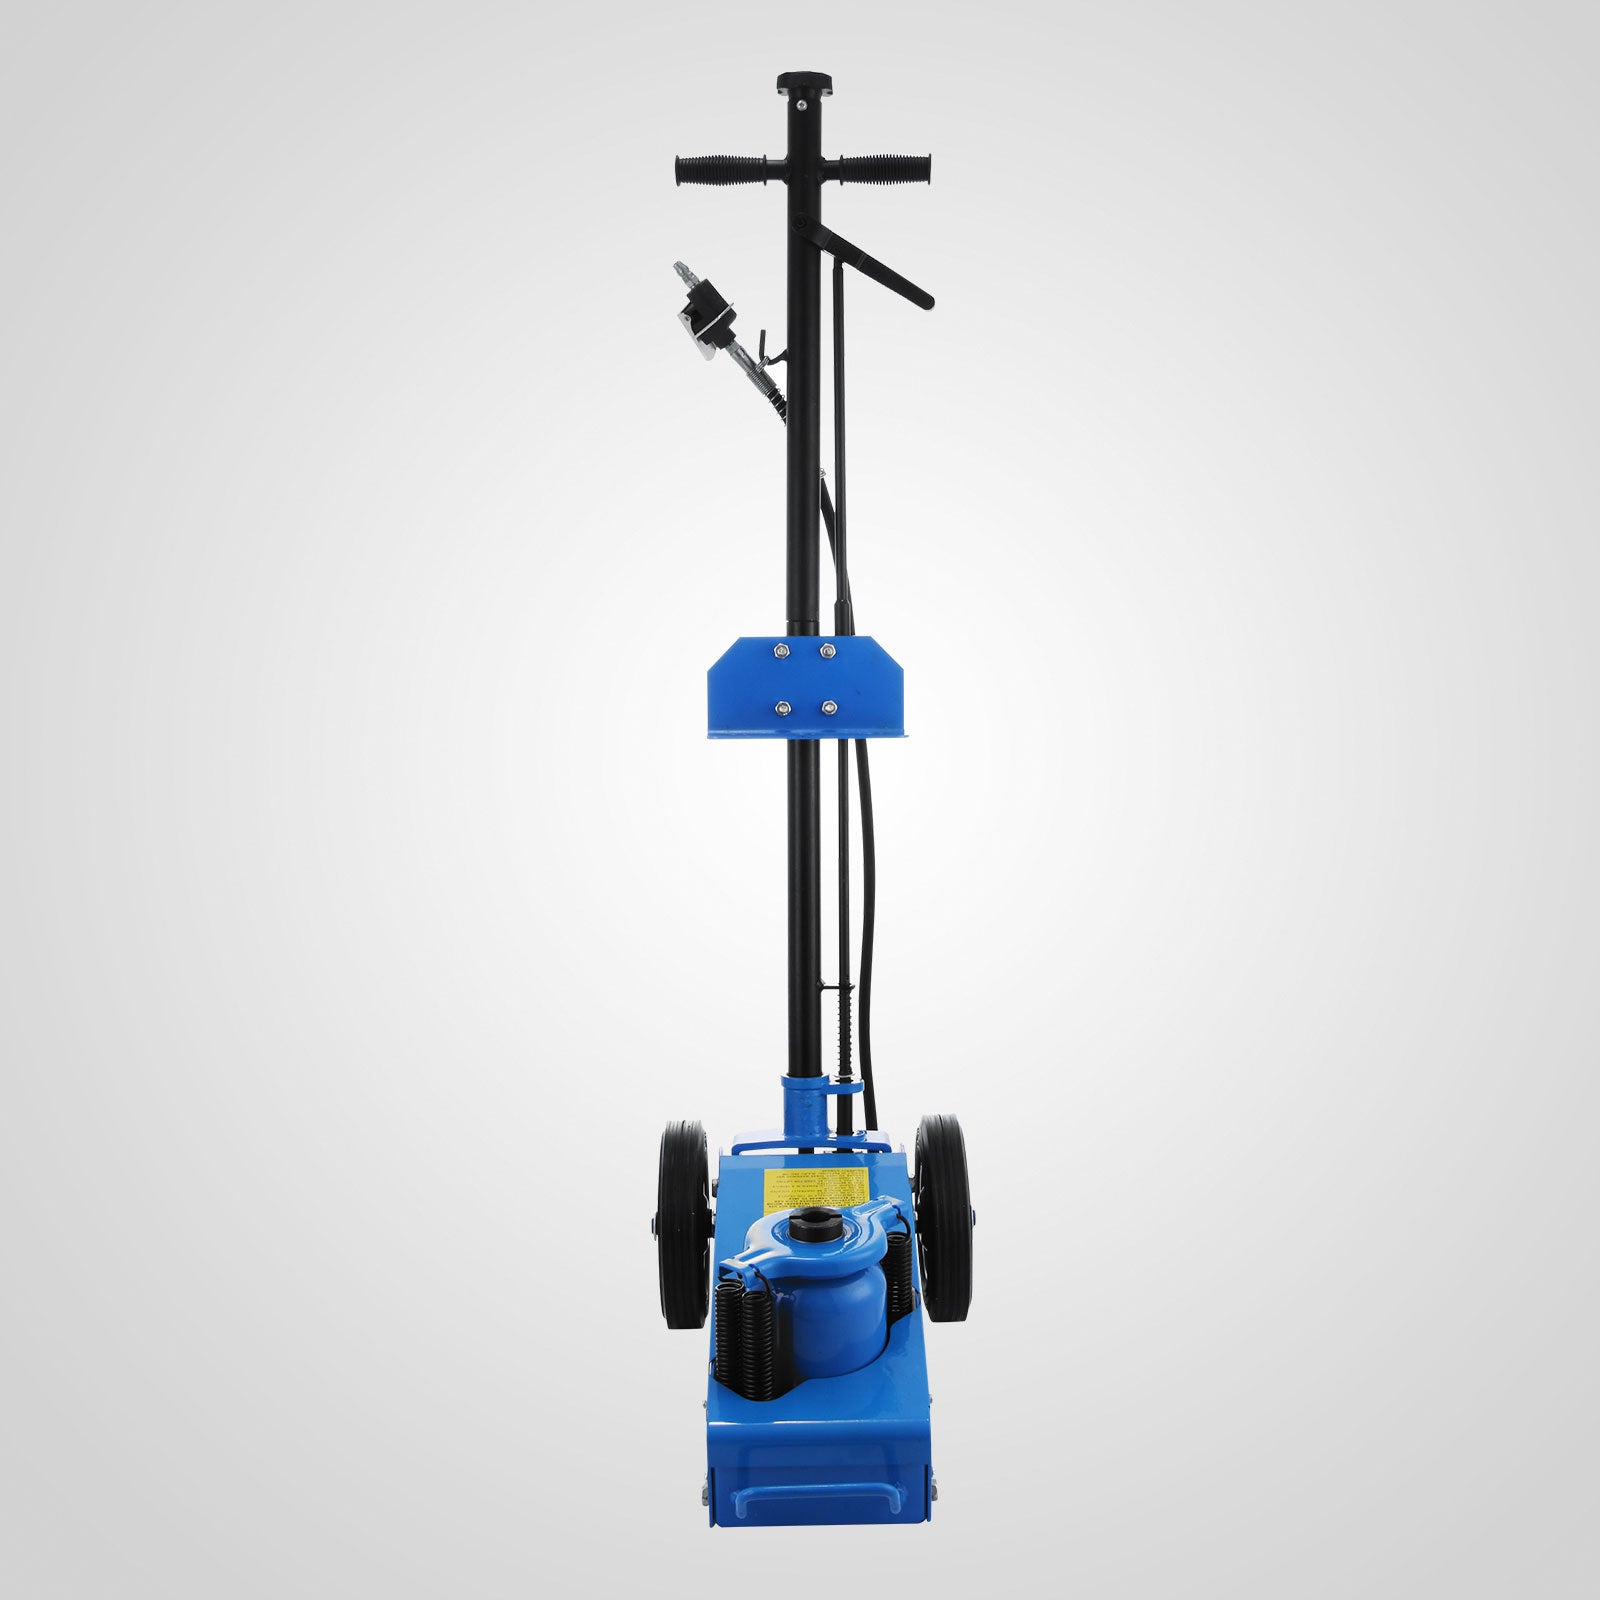 22 Ton Air/hydraulic Floor Jack - Car Truck Suv Trolley